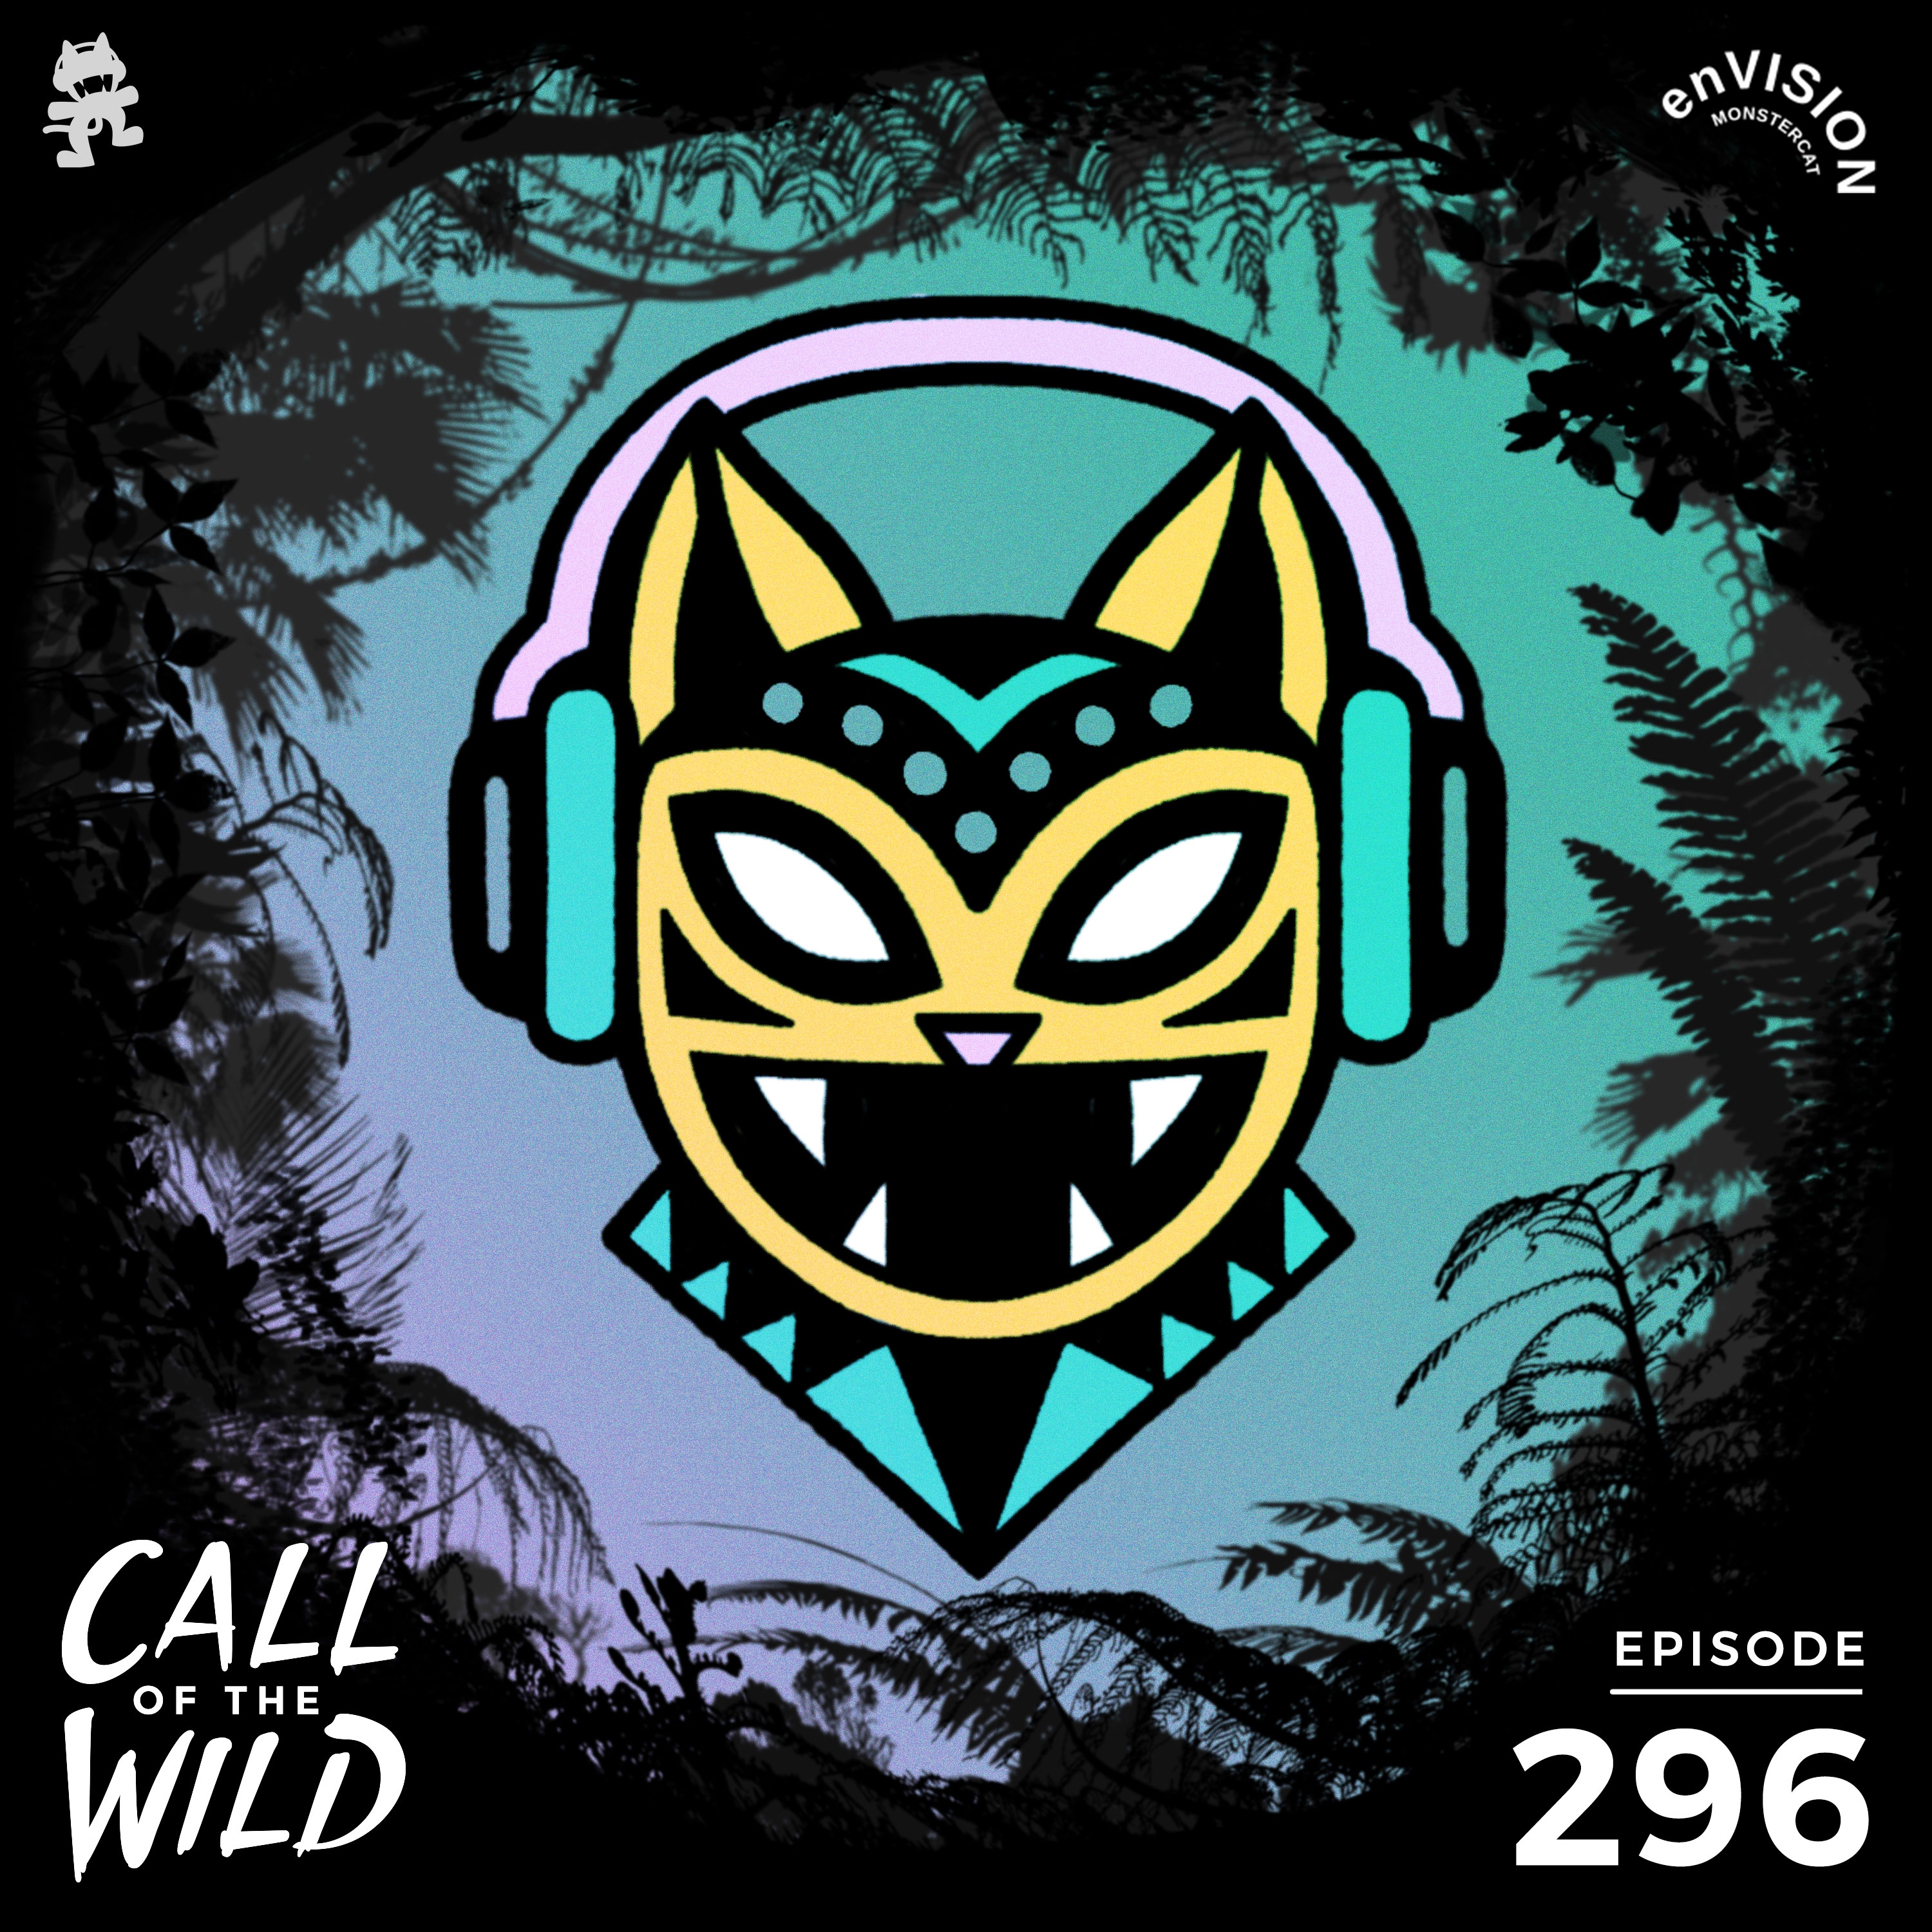 Monstercat: Call of the Wild - Episode 296